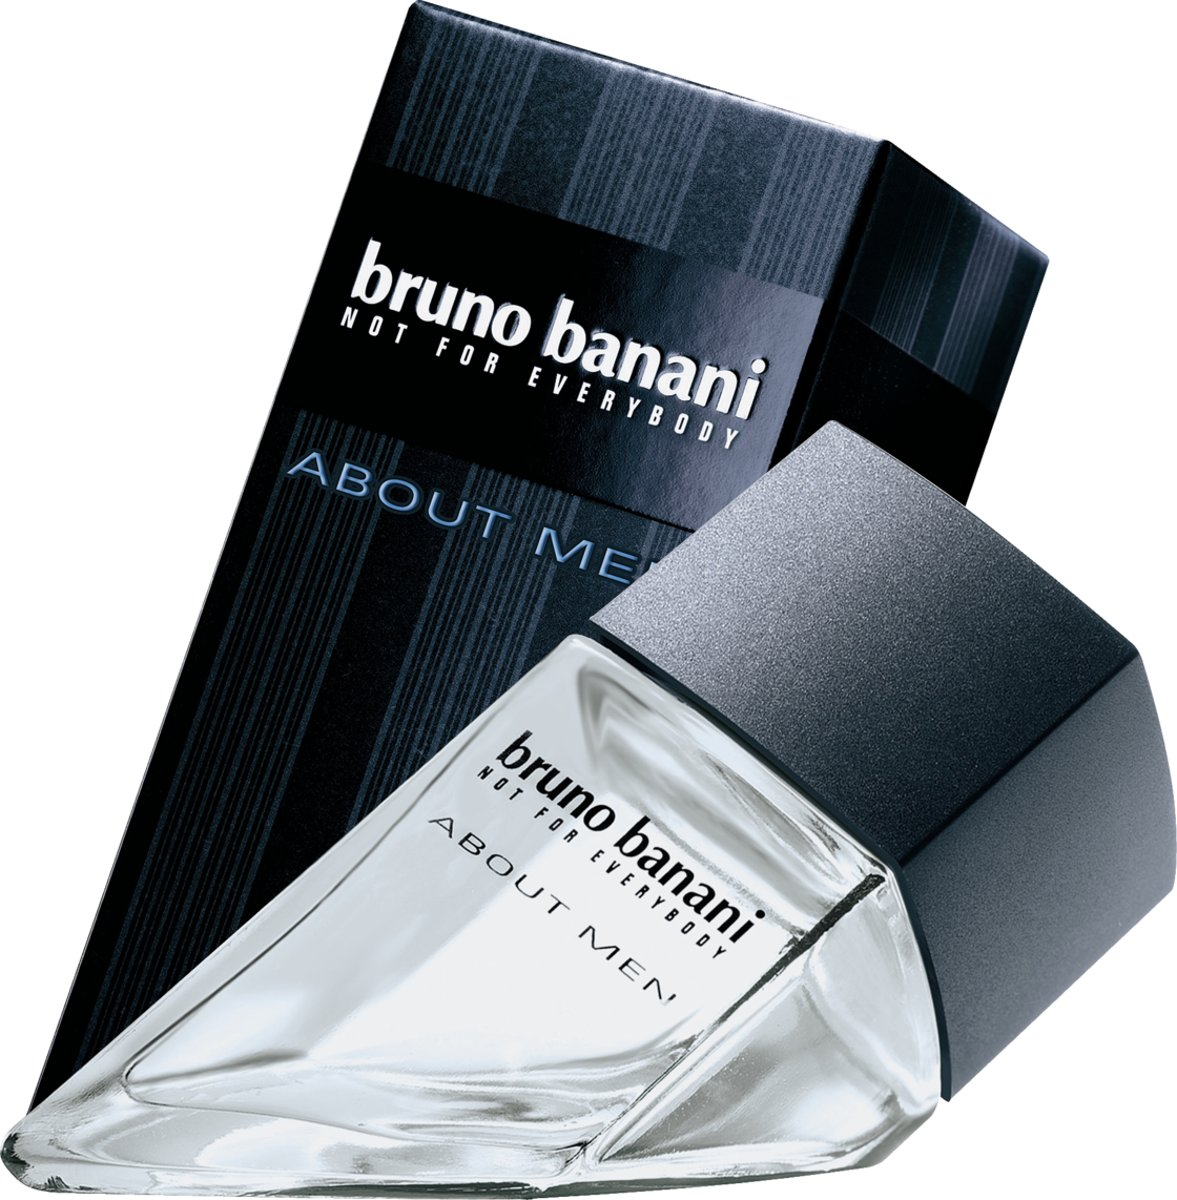 Bruno Banani  About Men - 30 ml - Eau de toilette